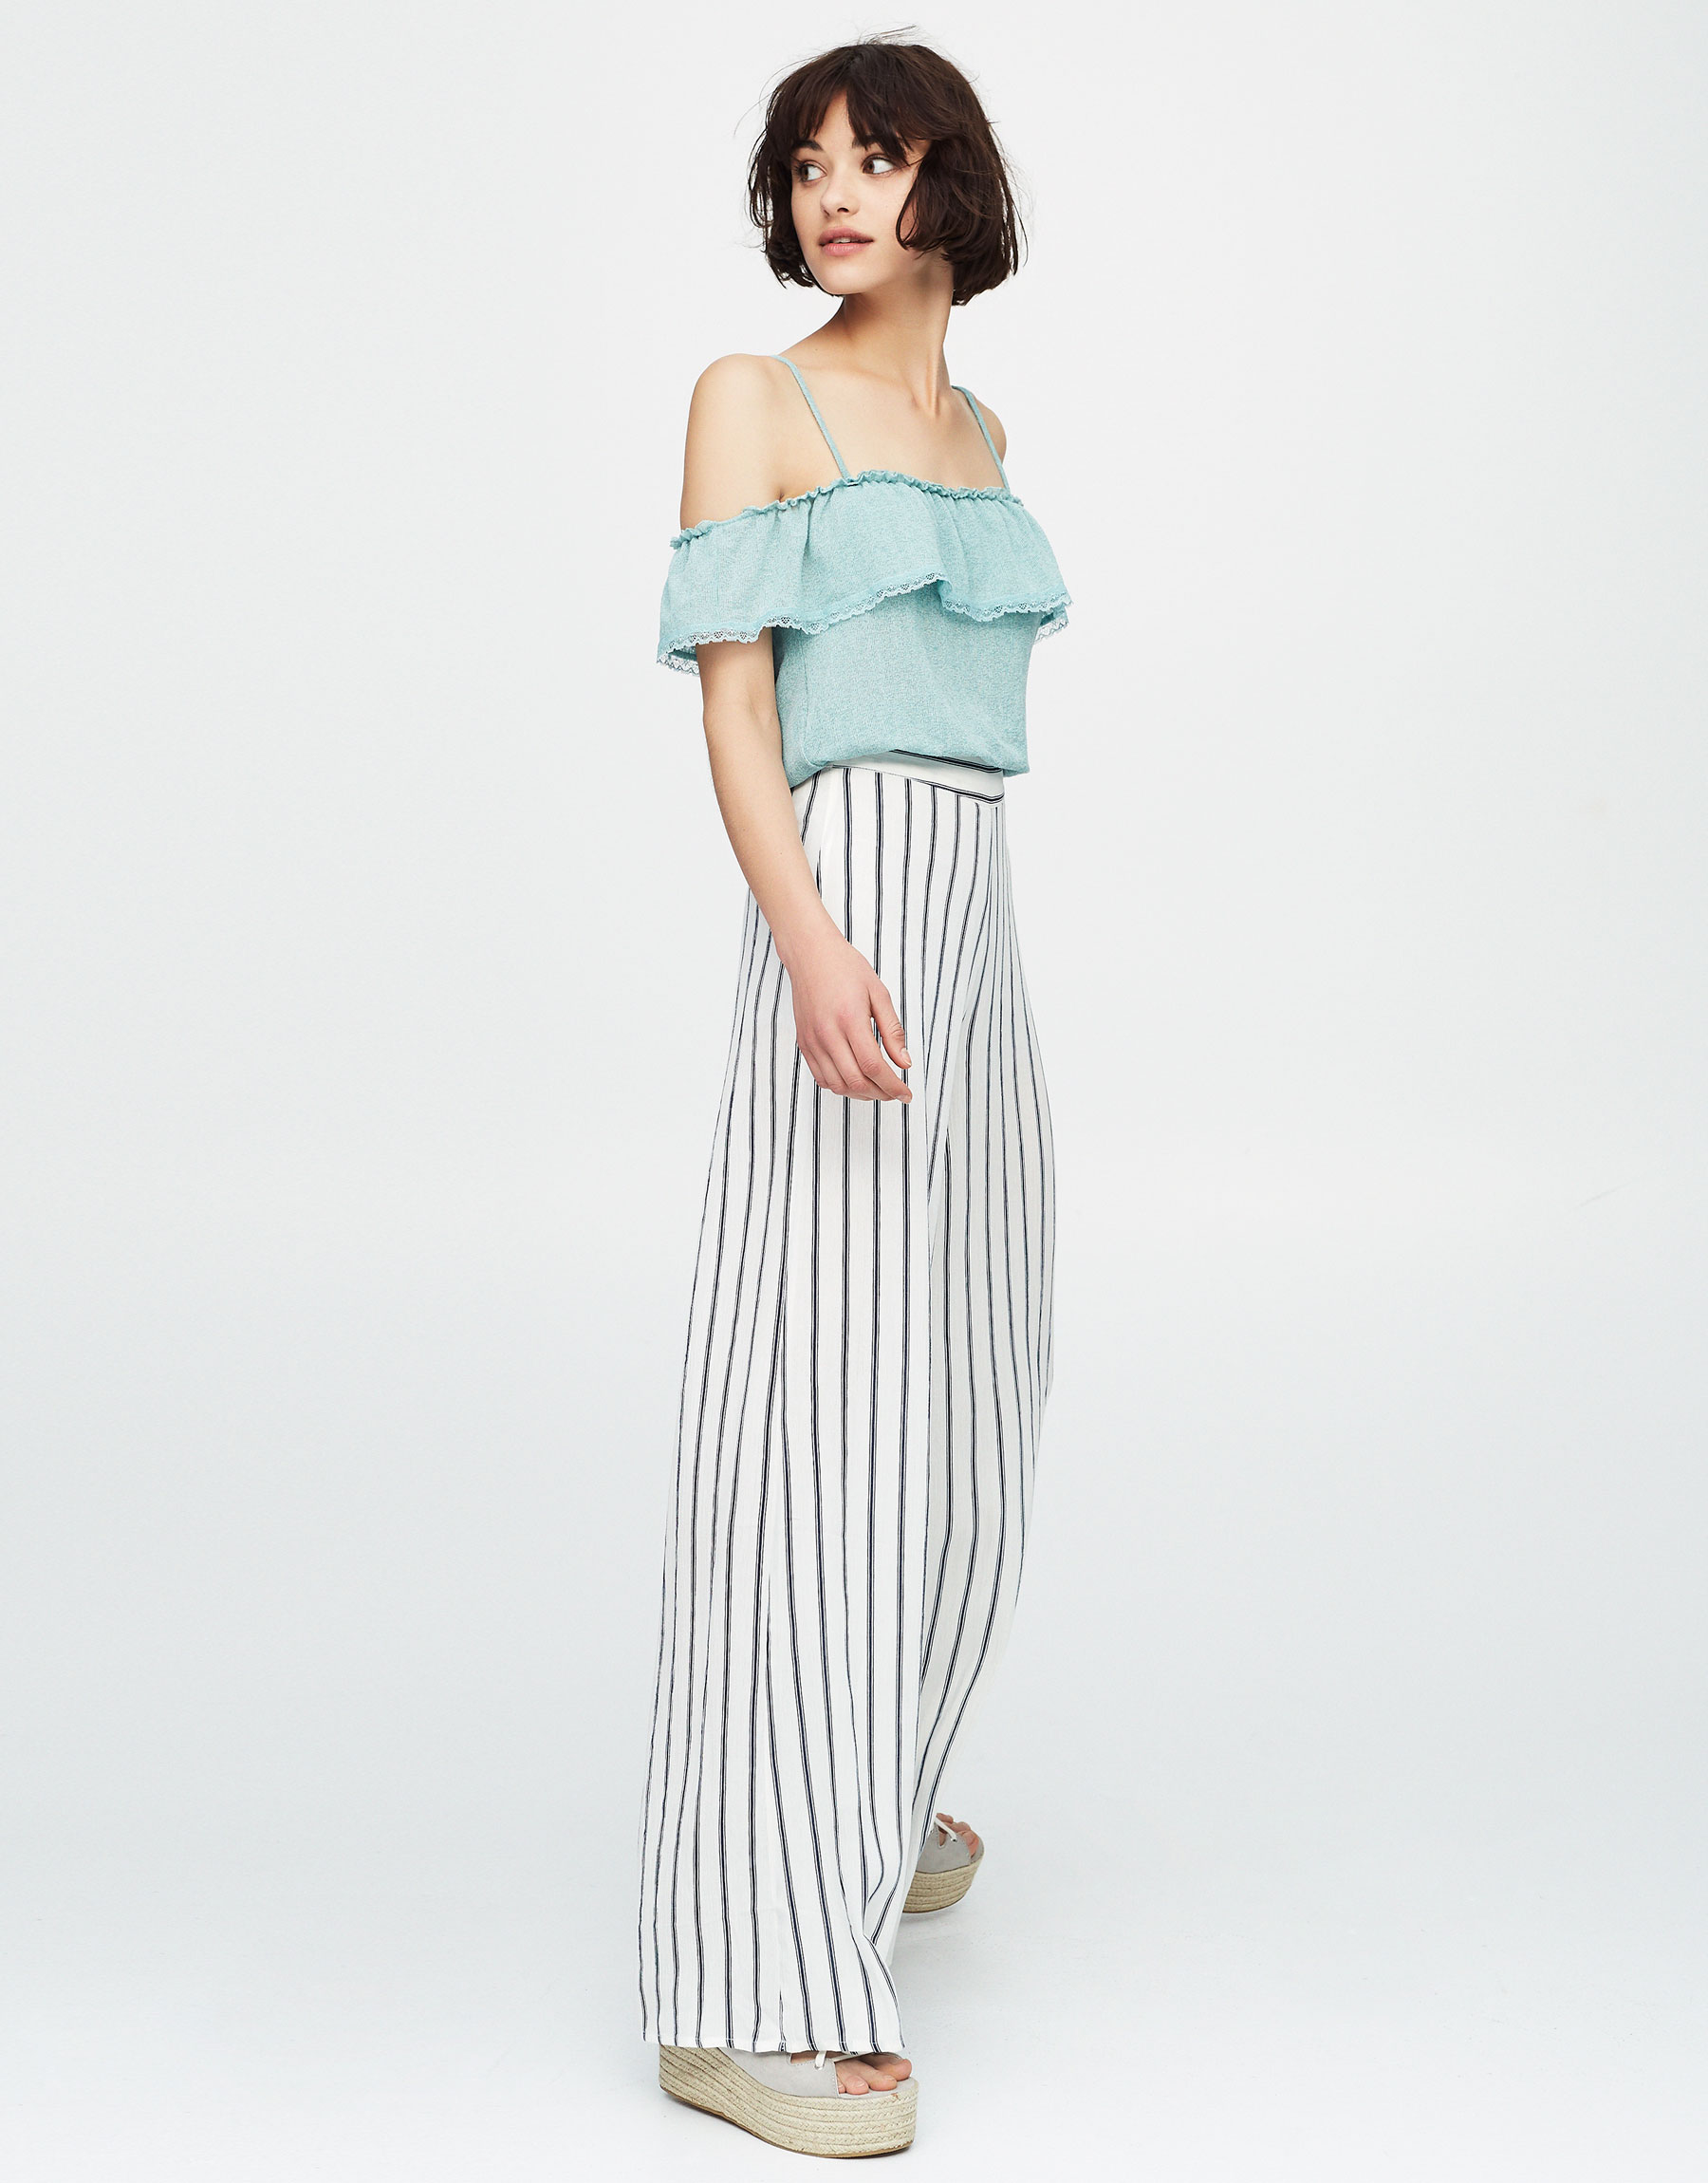 Crop top with ruffled neckline